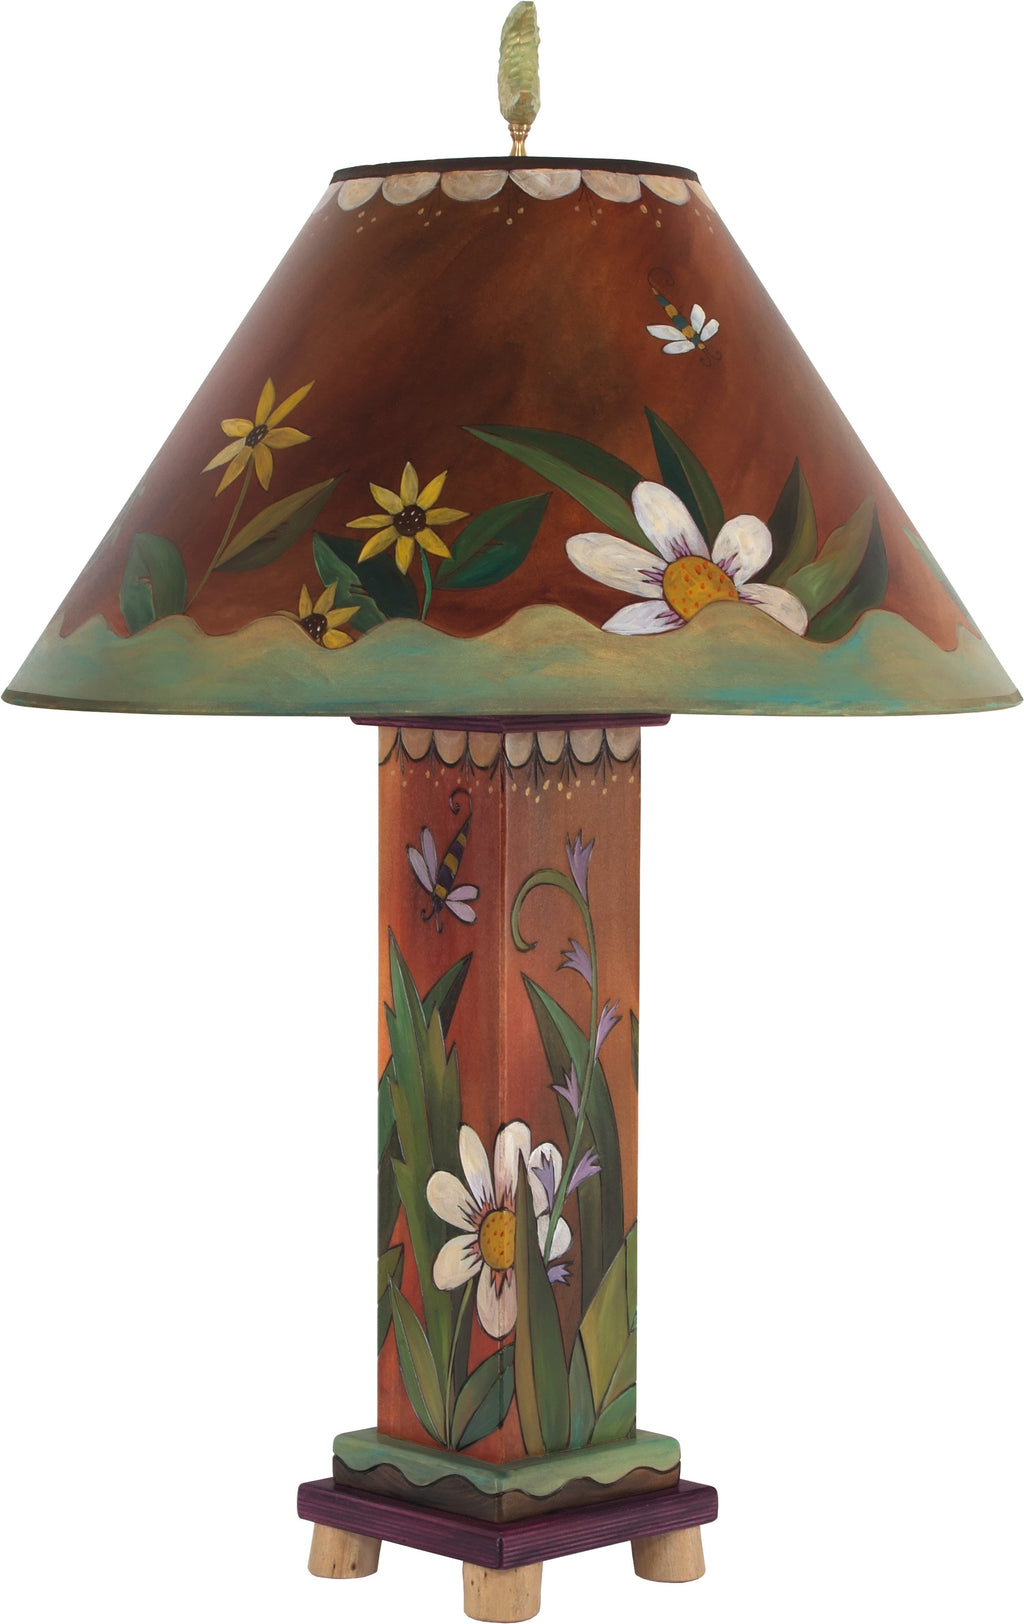 Box Table Lamp –  Elegant table lamp with floral garden motifs